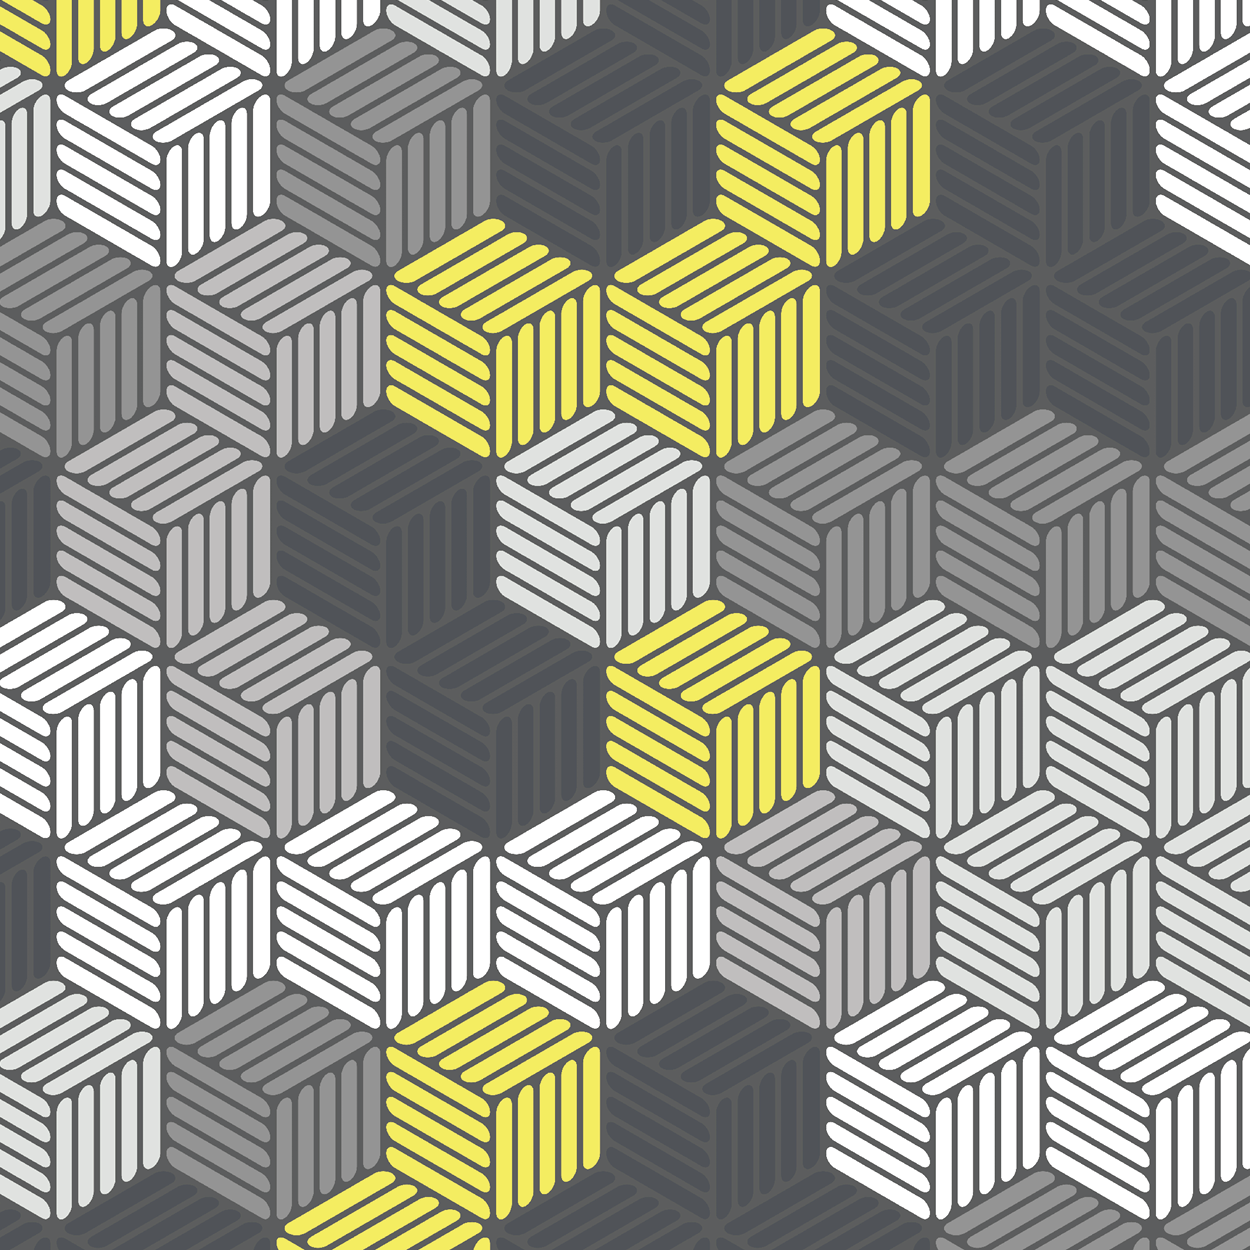 Isometric Hashed Cube 2